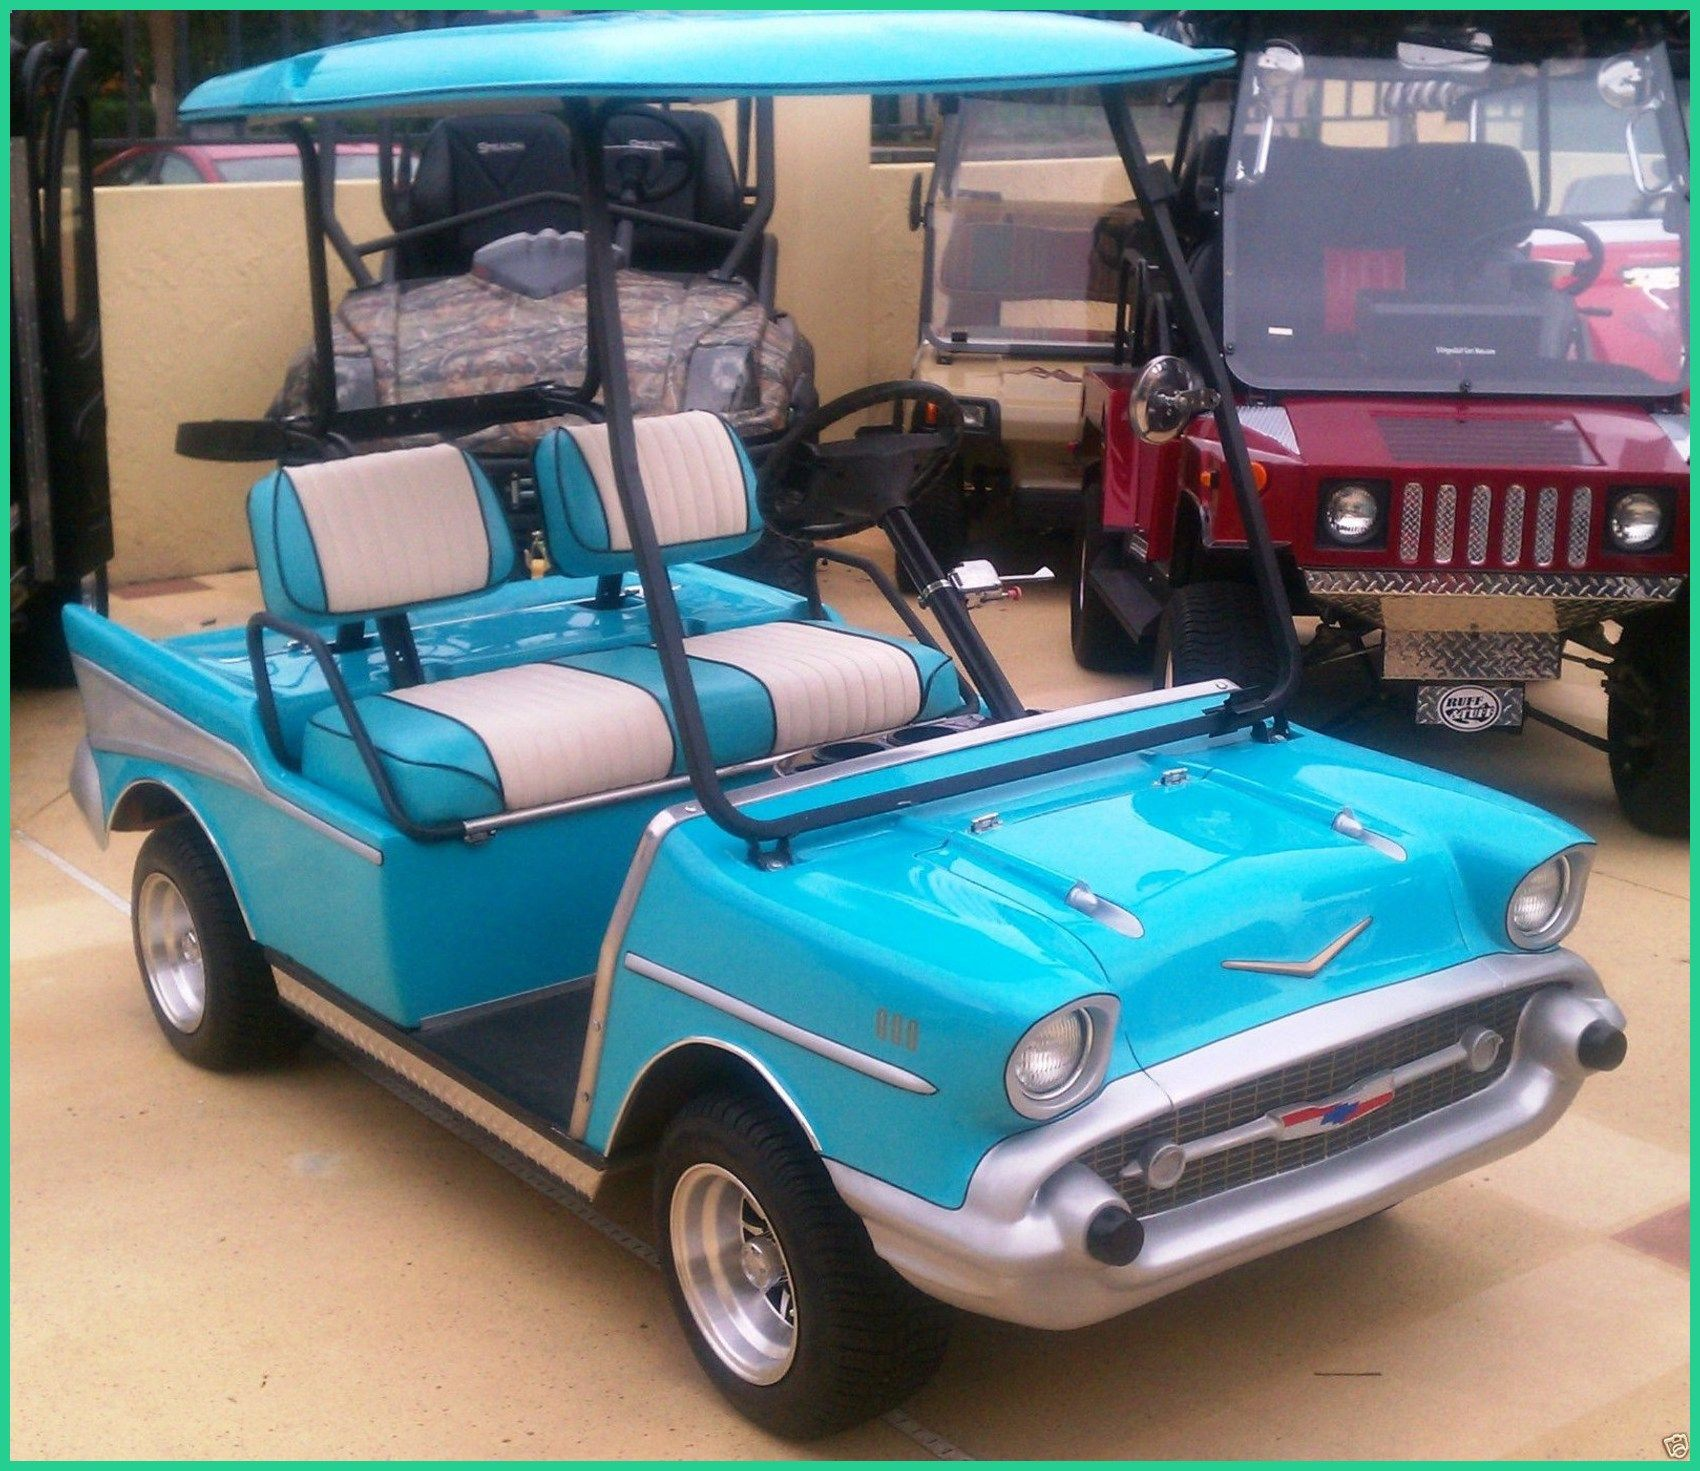 Melex Golf Cart S Kohler Michigan State 152 Carts Wiring Diagram How To Find Quality Parts For On